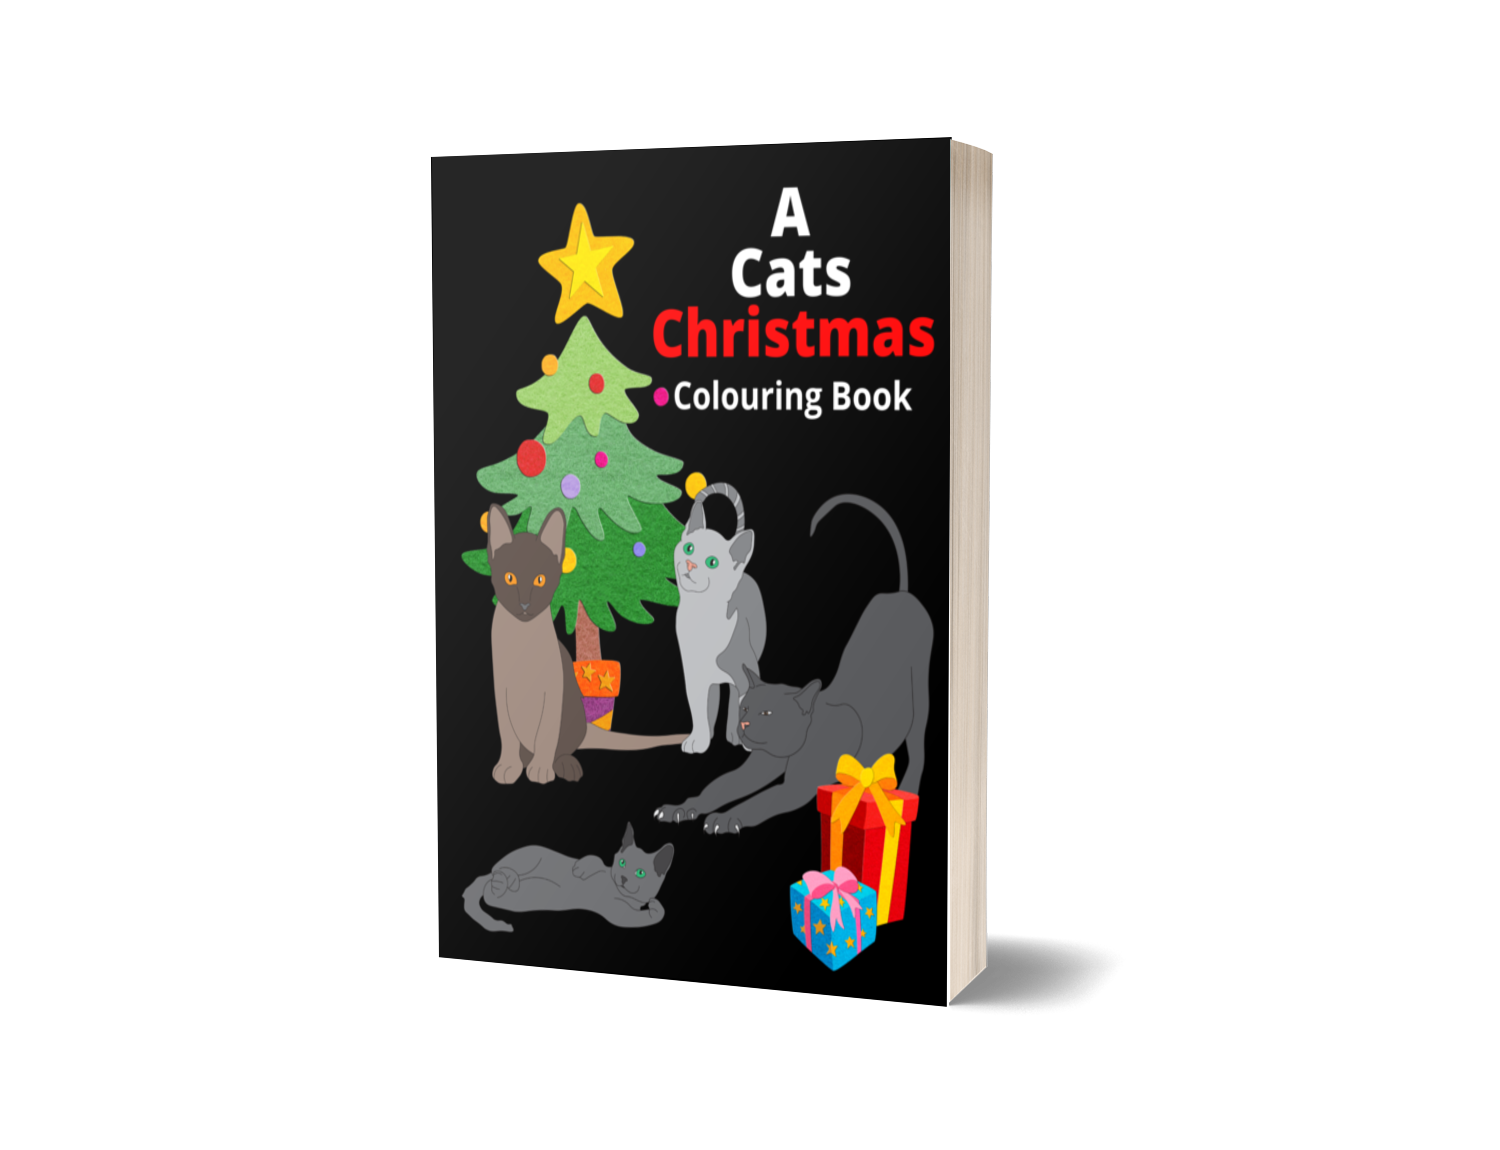 A Cats Christmas Colouring Book